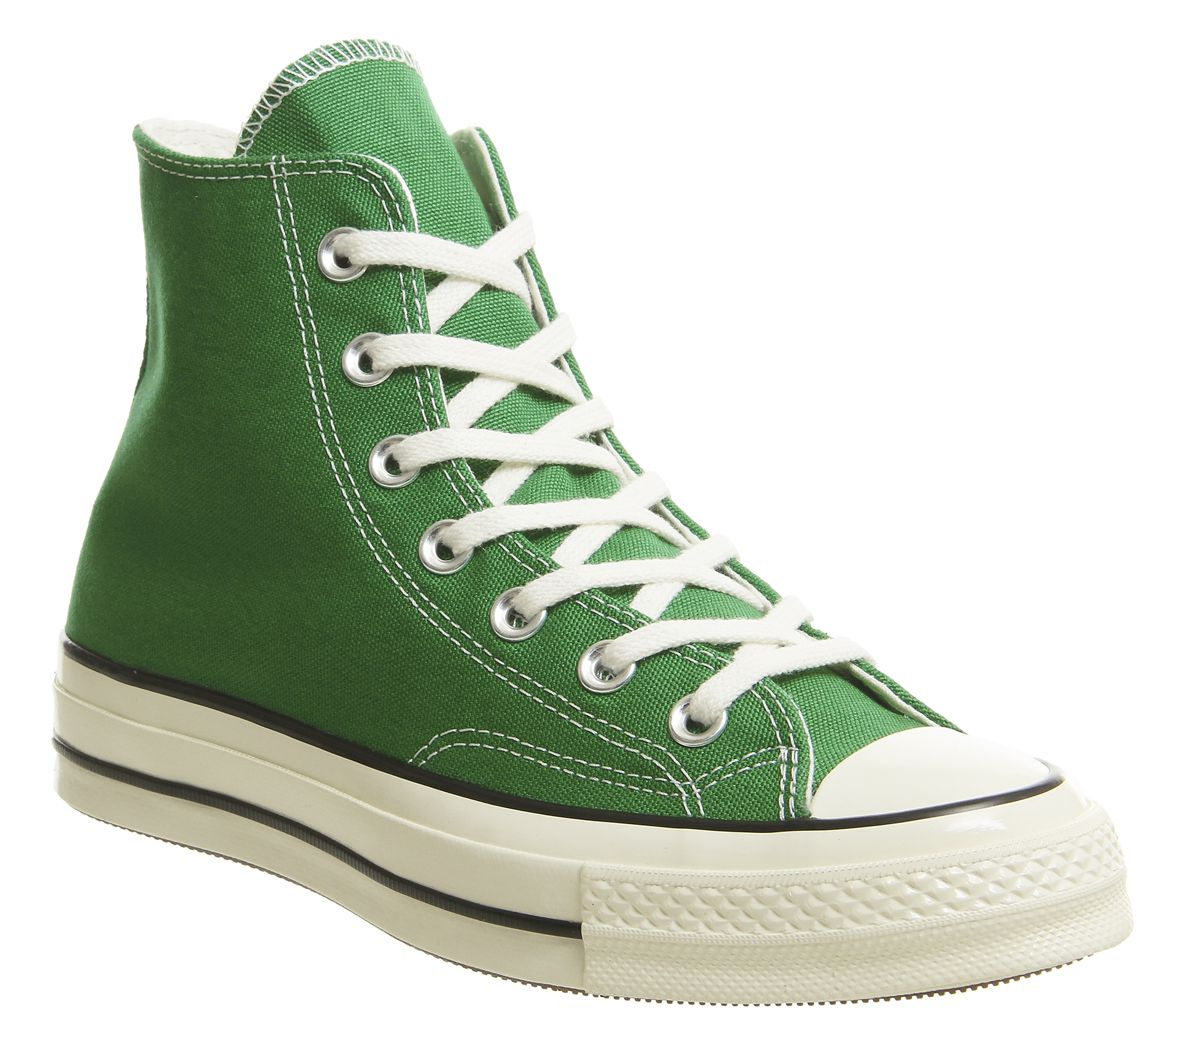 f0d234609867 Converse All Star Hi 70 s Trainers Green Black Egret - Unisex Sports